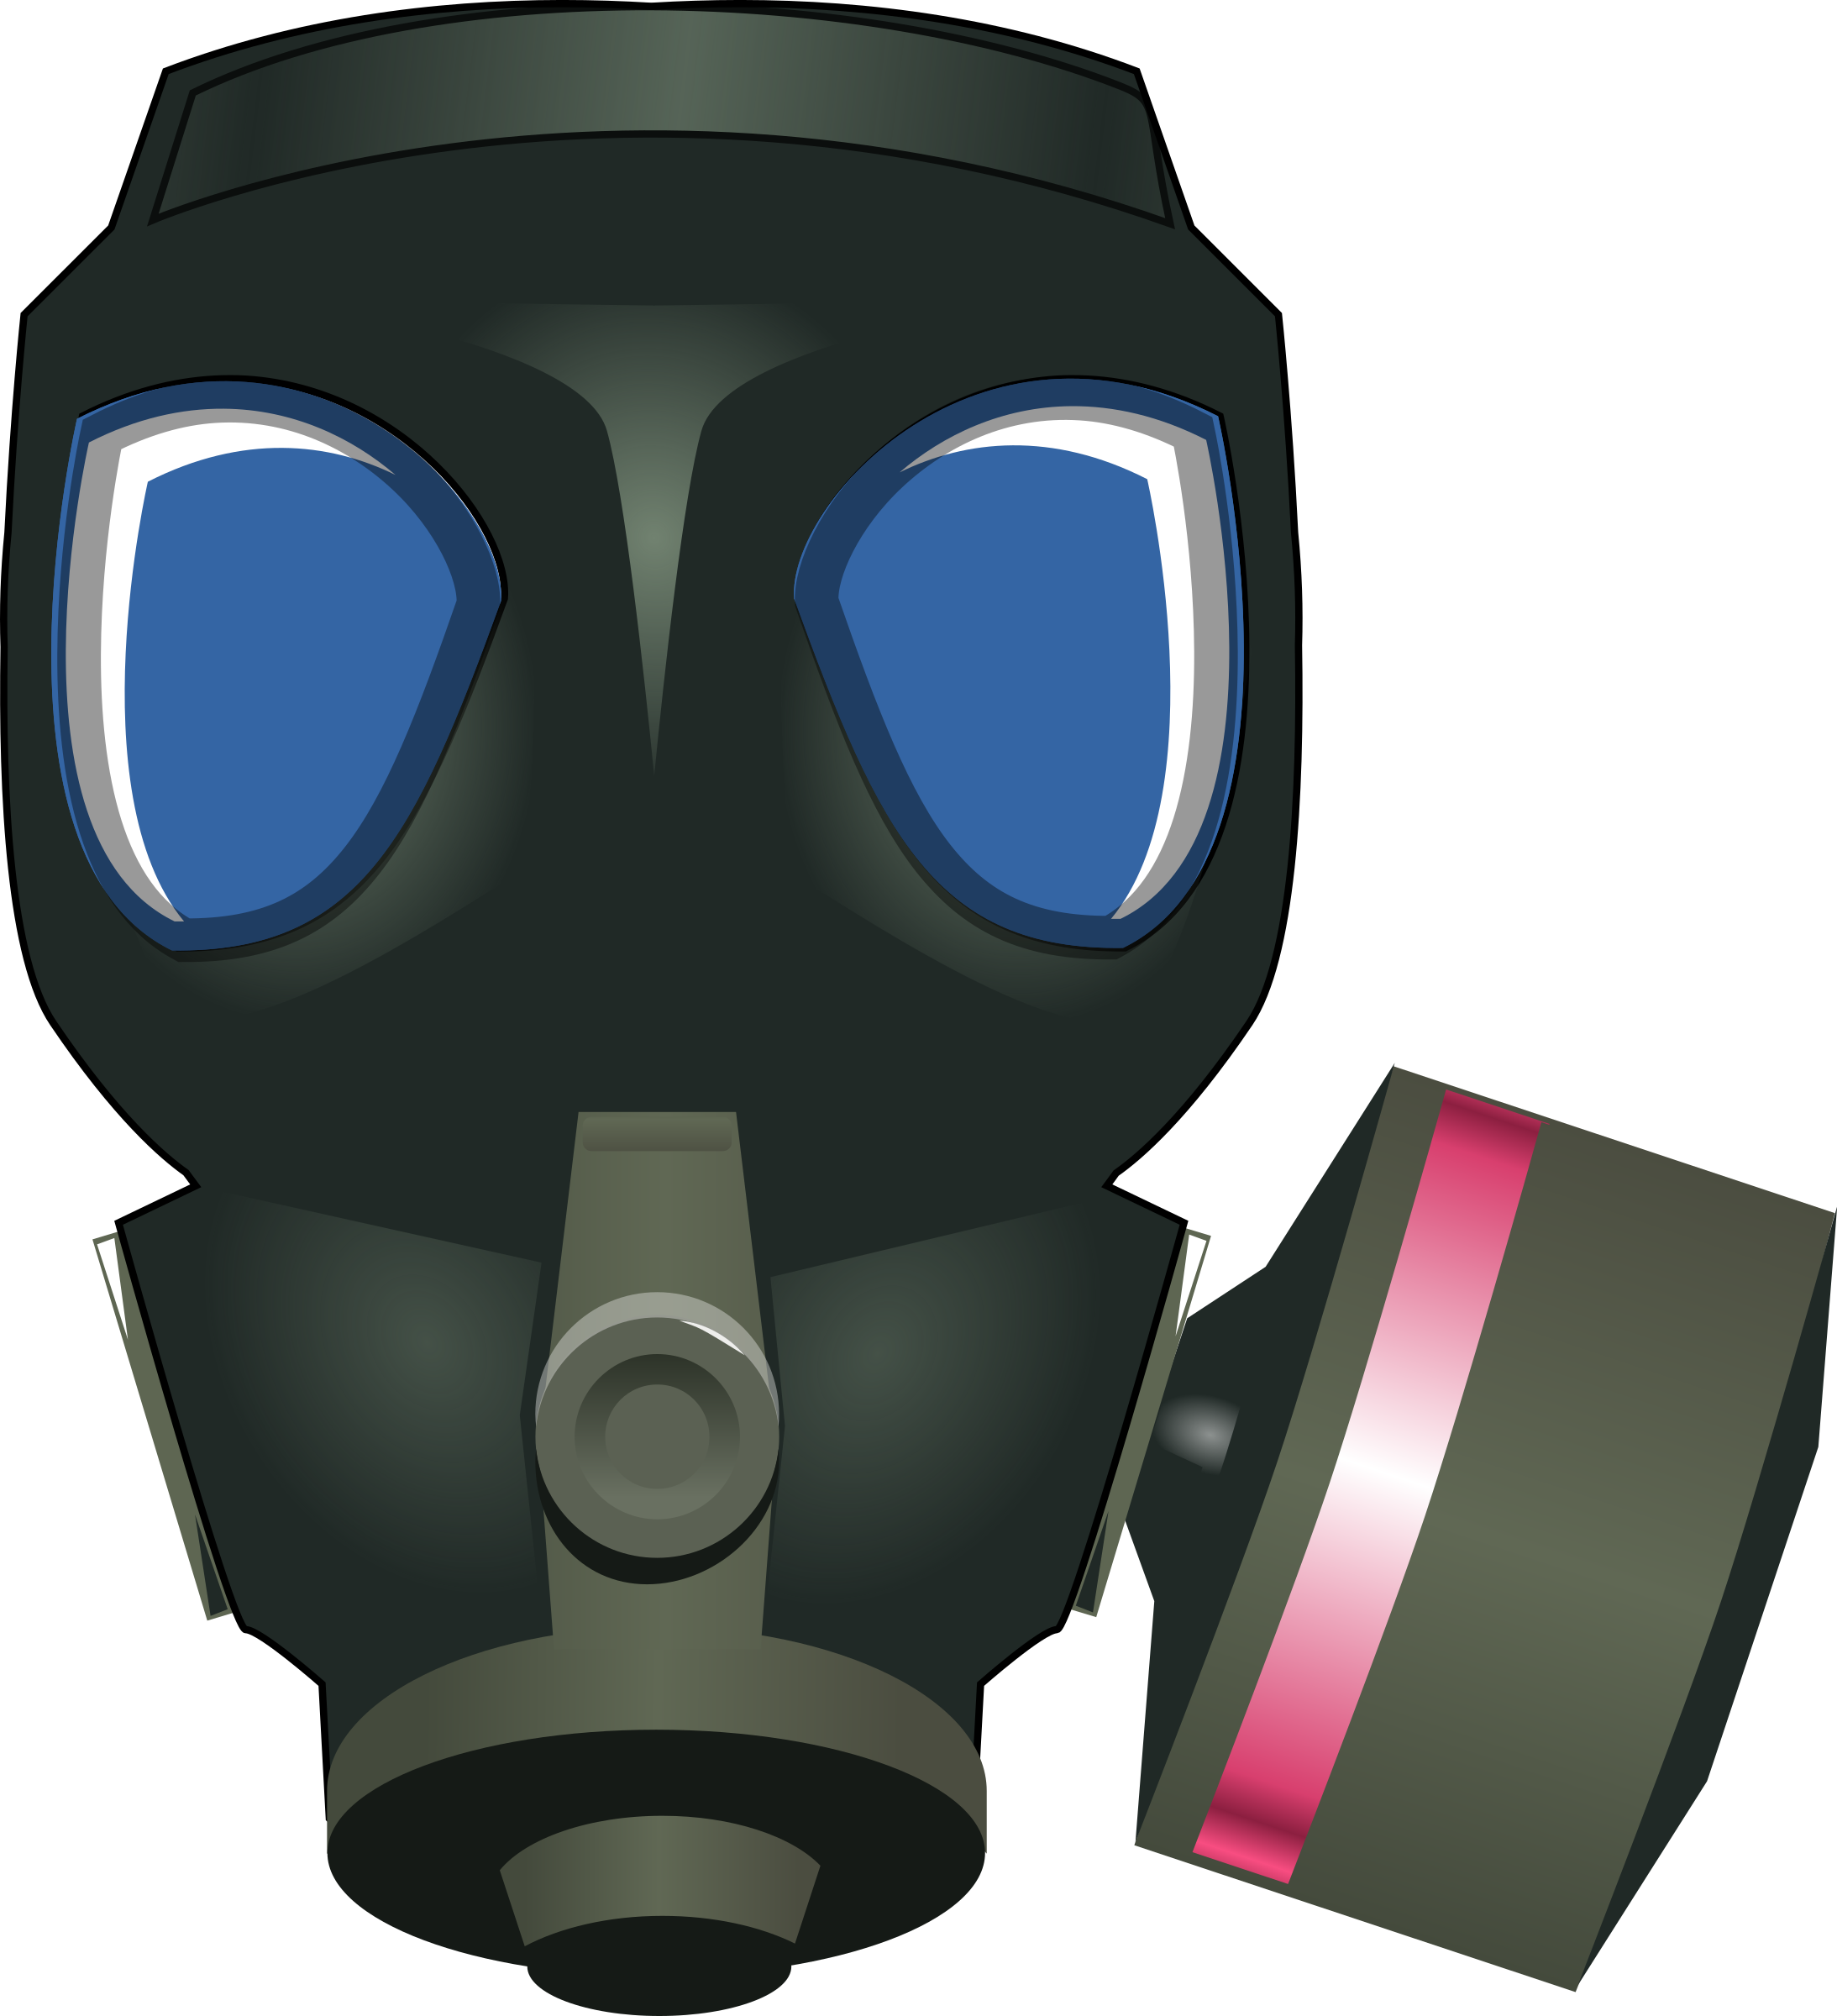 Mask clipart gas mask. Cartoon pencil and in